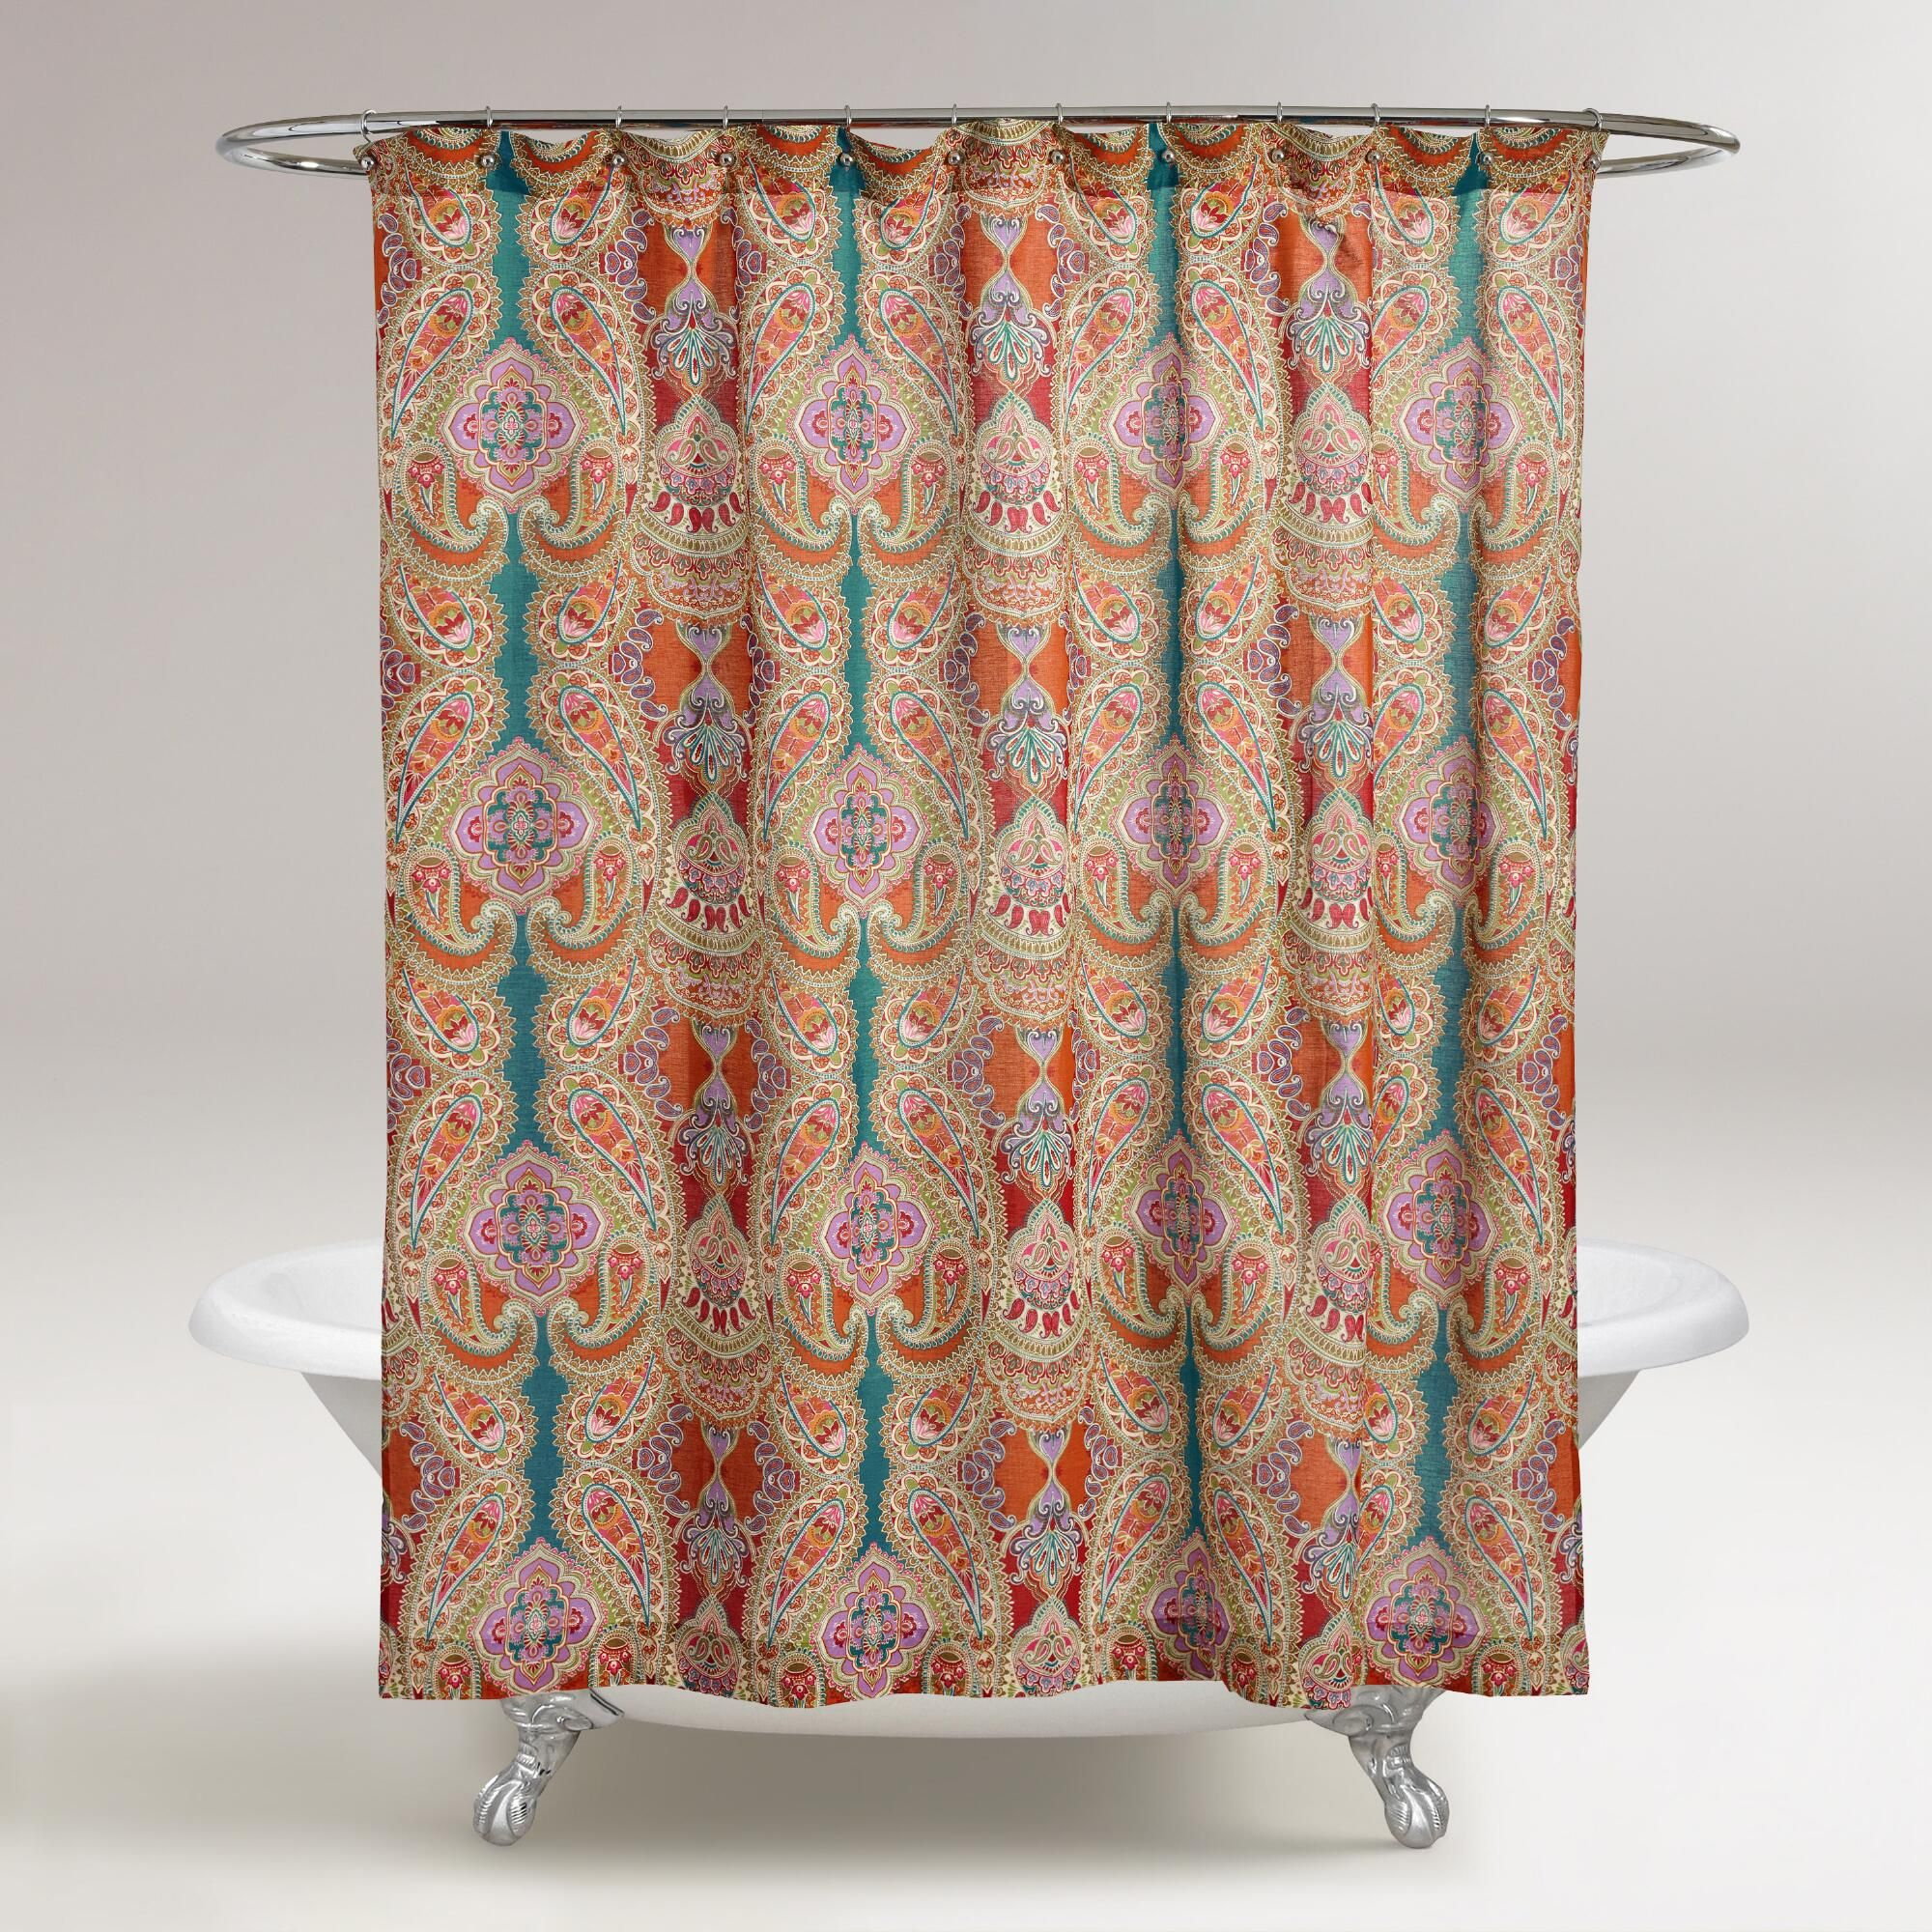 Our Venice Paisley Shower Curtain Adds A Whimsical Air With Its